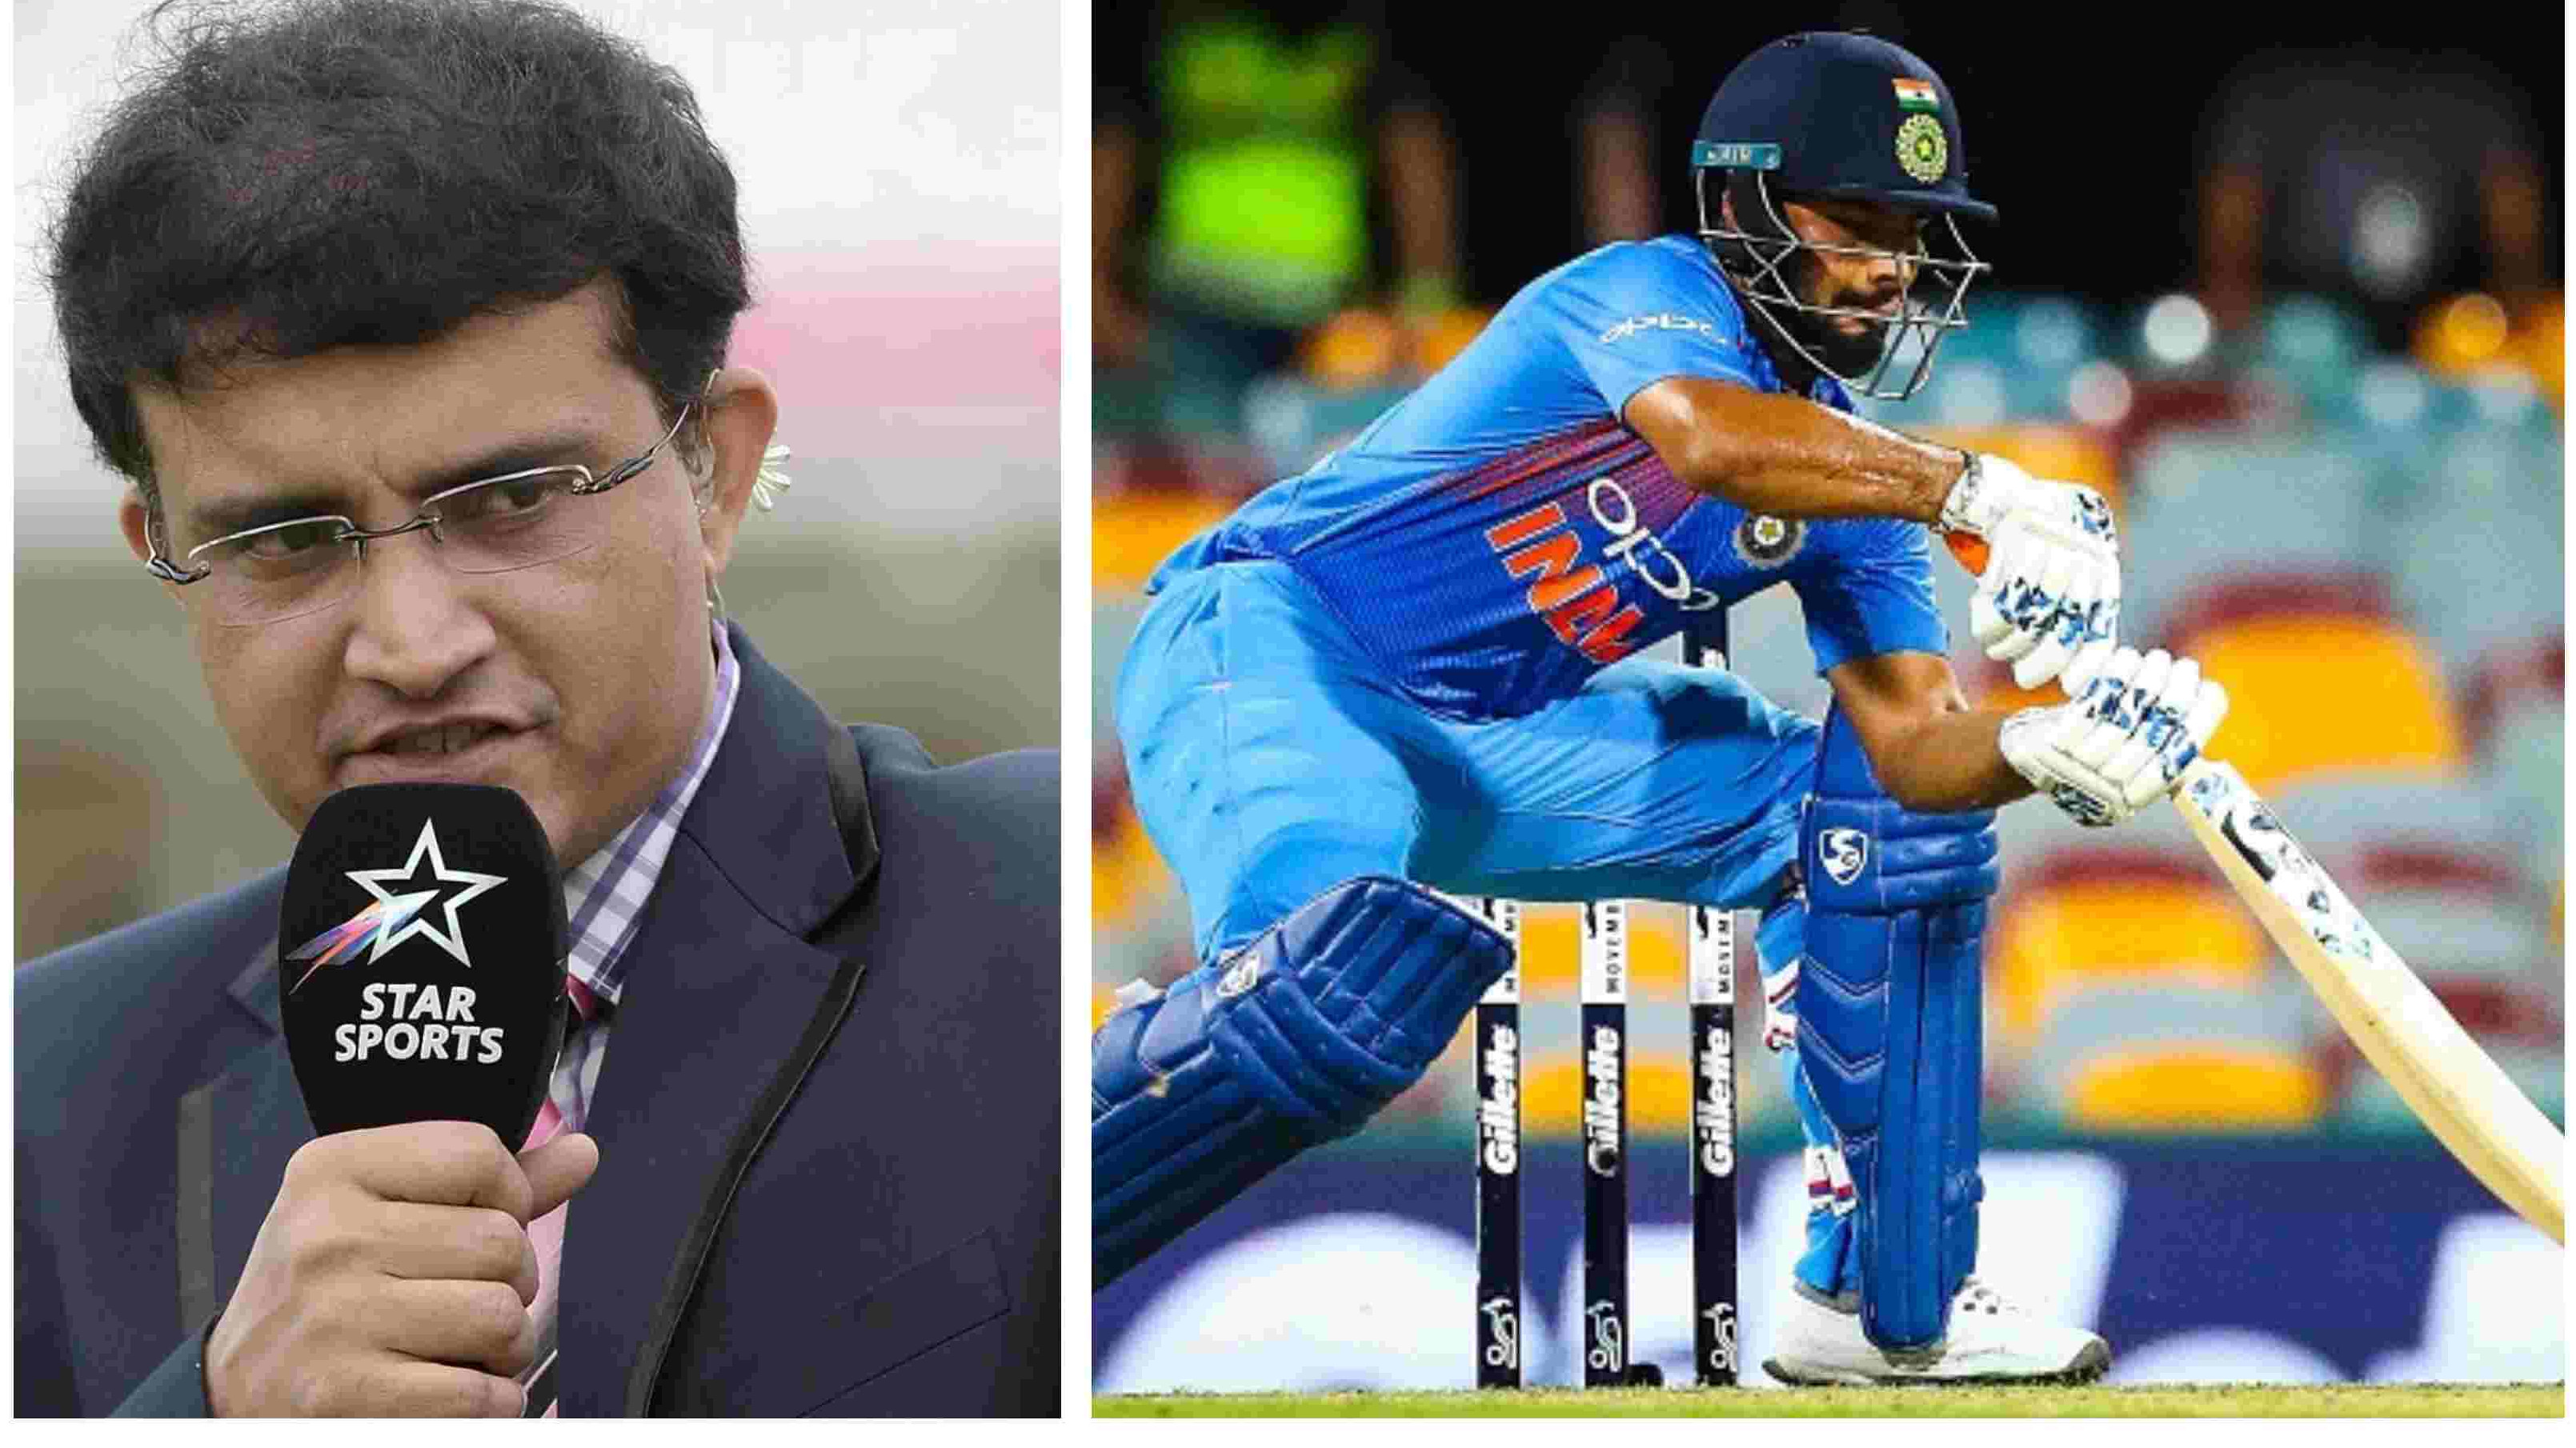 AUS v IND 2018-19: Sourav Ganguly urges Rishabh Pant to work on his poor shot selection